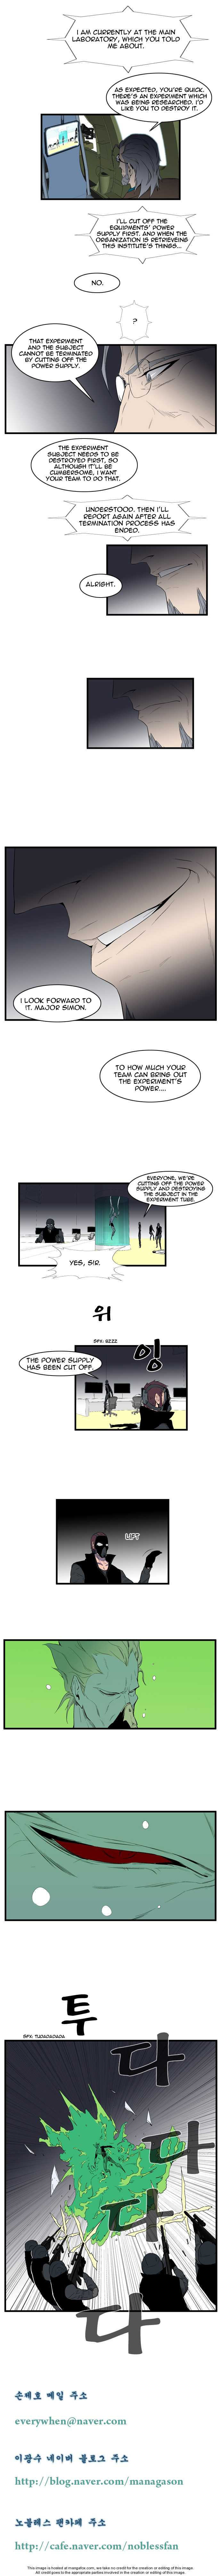 Noblesse 84 Page 4